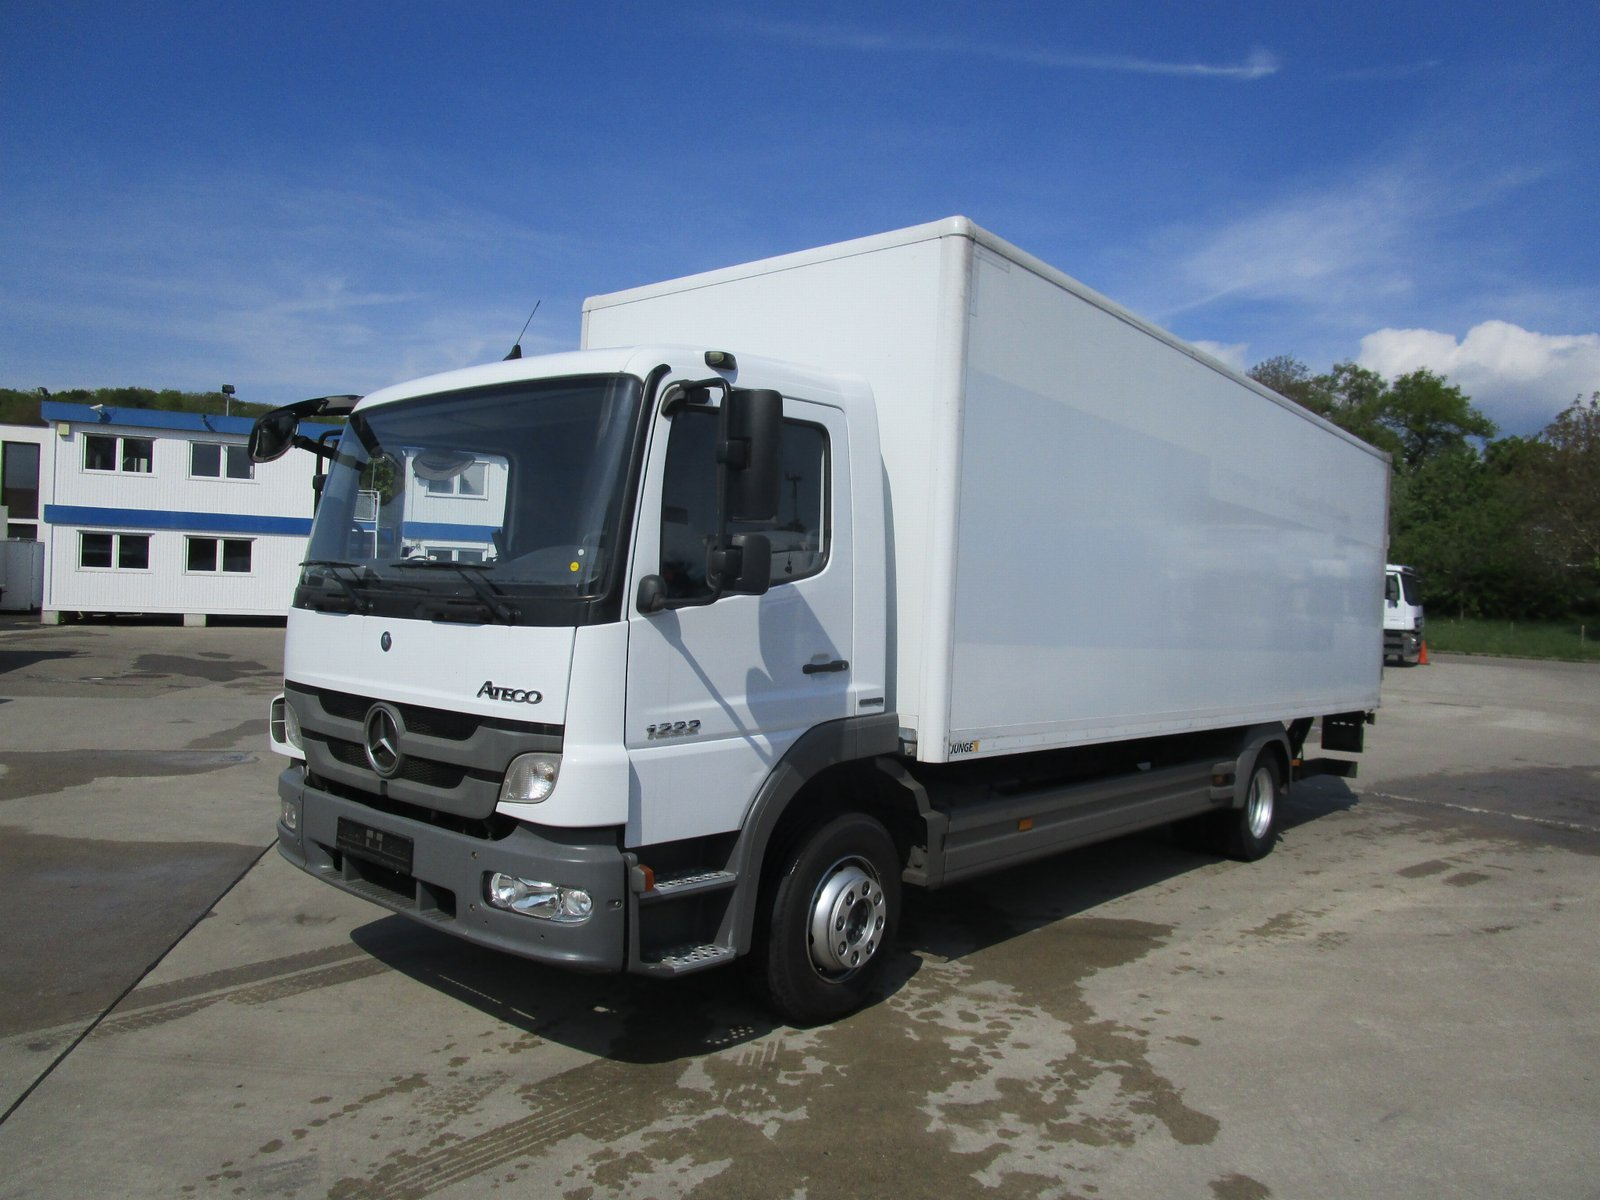 ATEGO 1222 L Koffer 7,20 m LBW 1,5 T*NL 5,44 to.